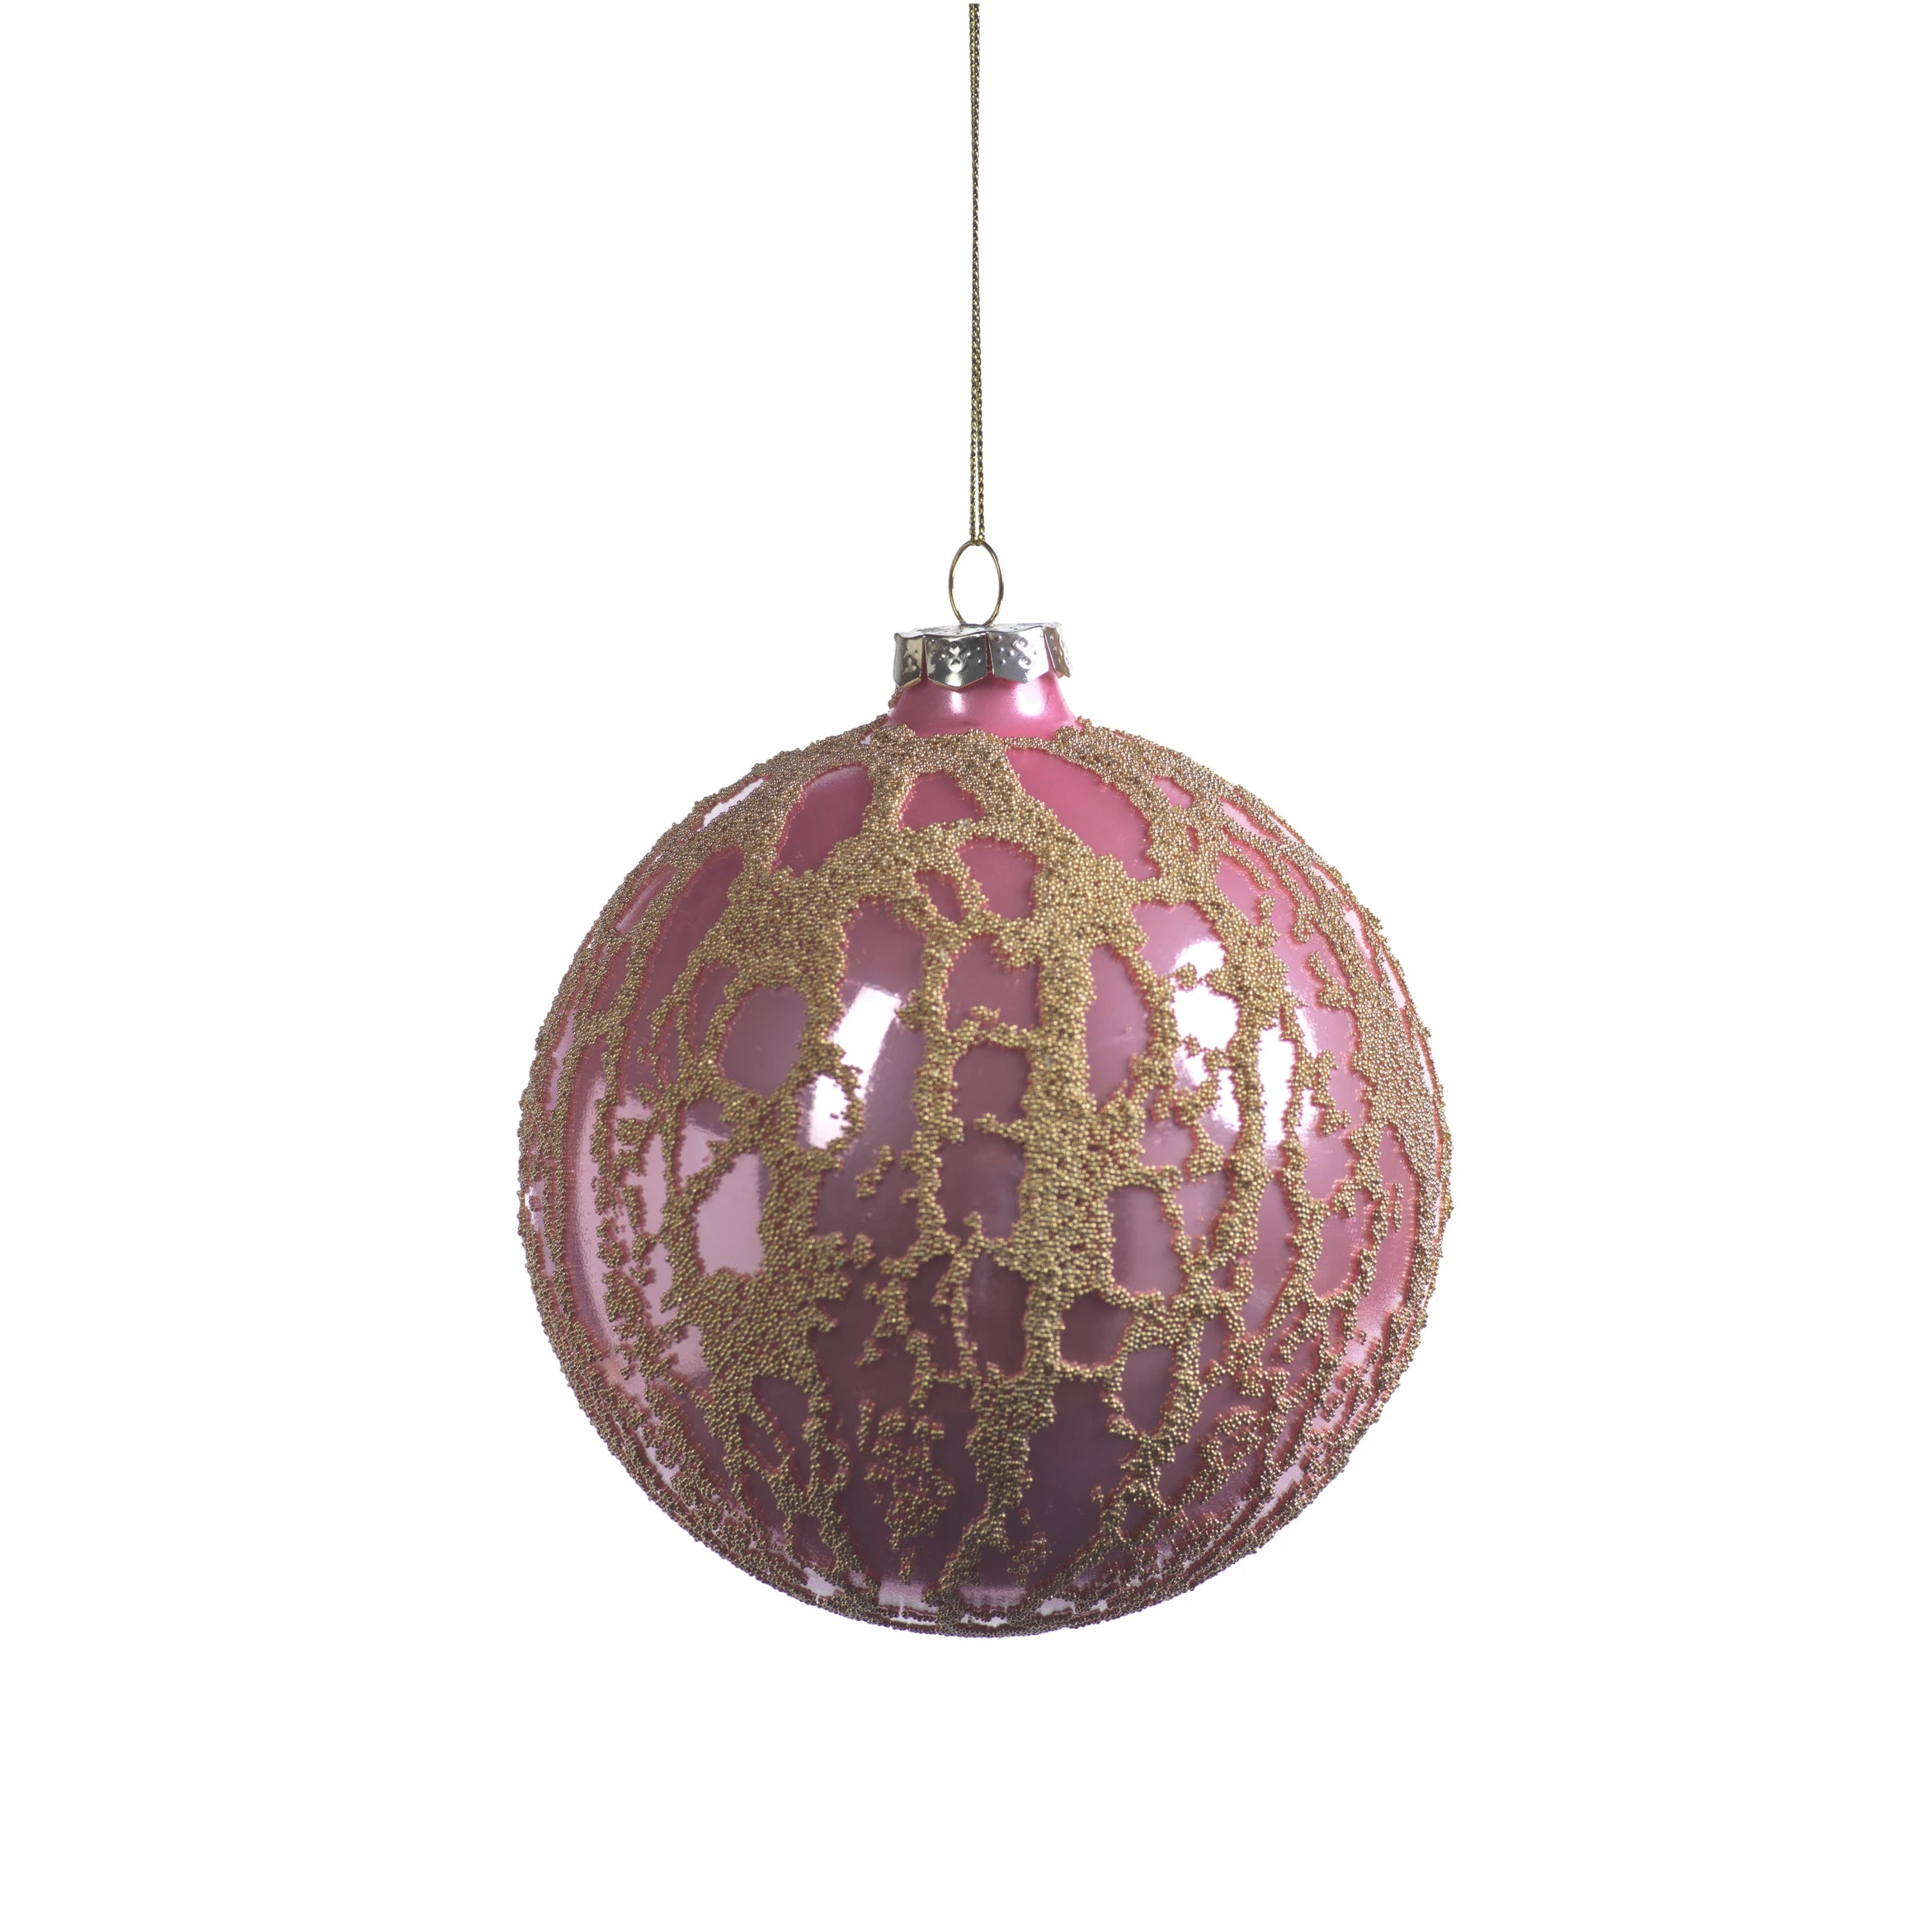 Pink Ball Ornament w/ Abstract Gold Beads - CARLYLE AVENUE